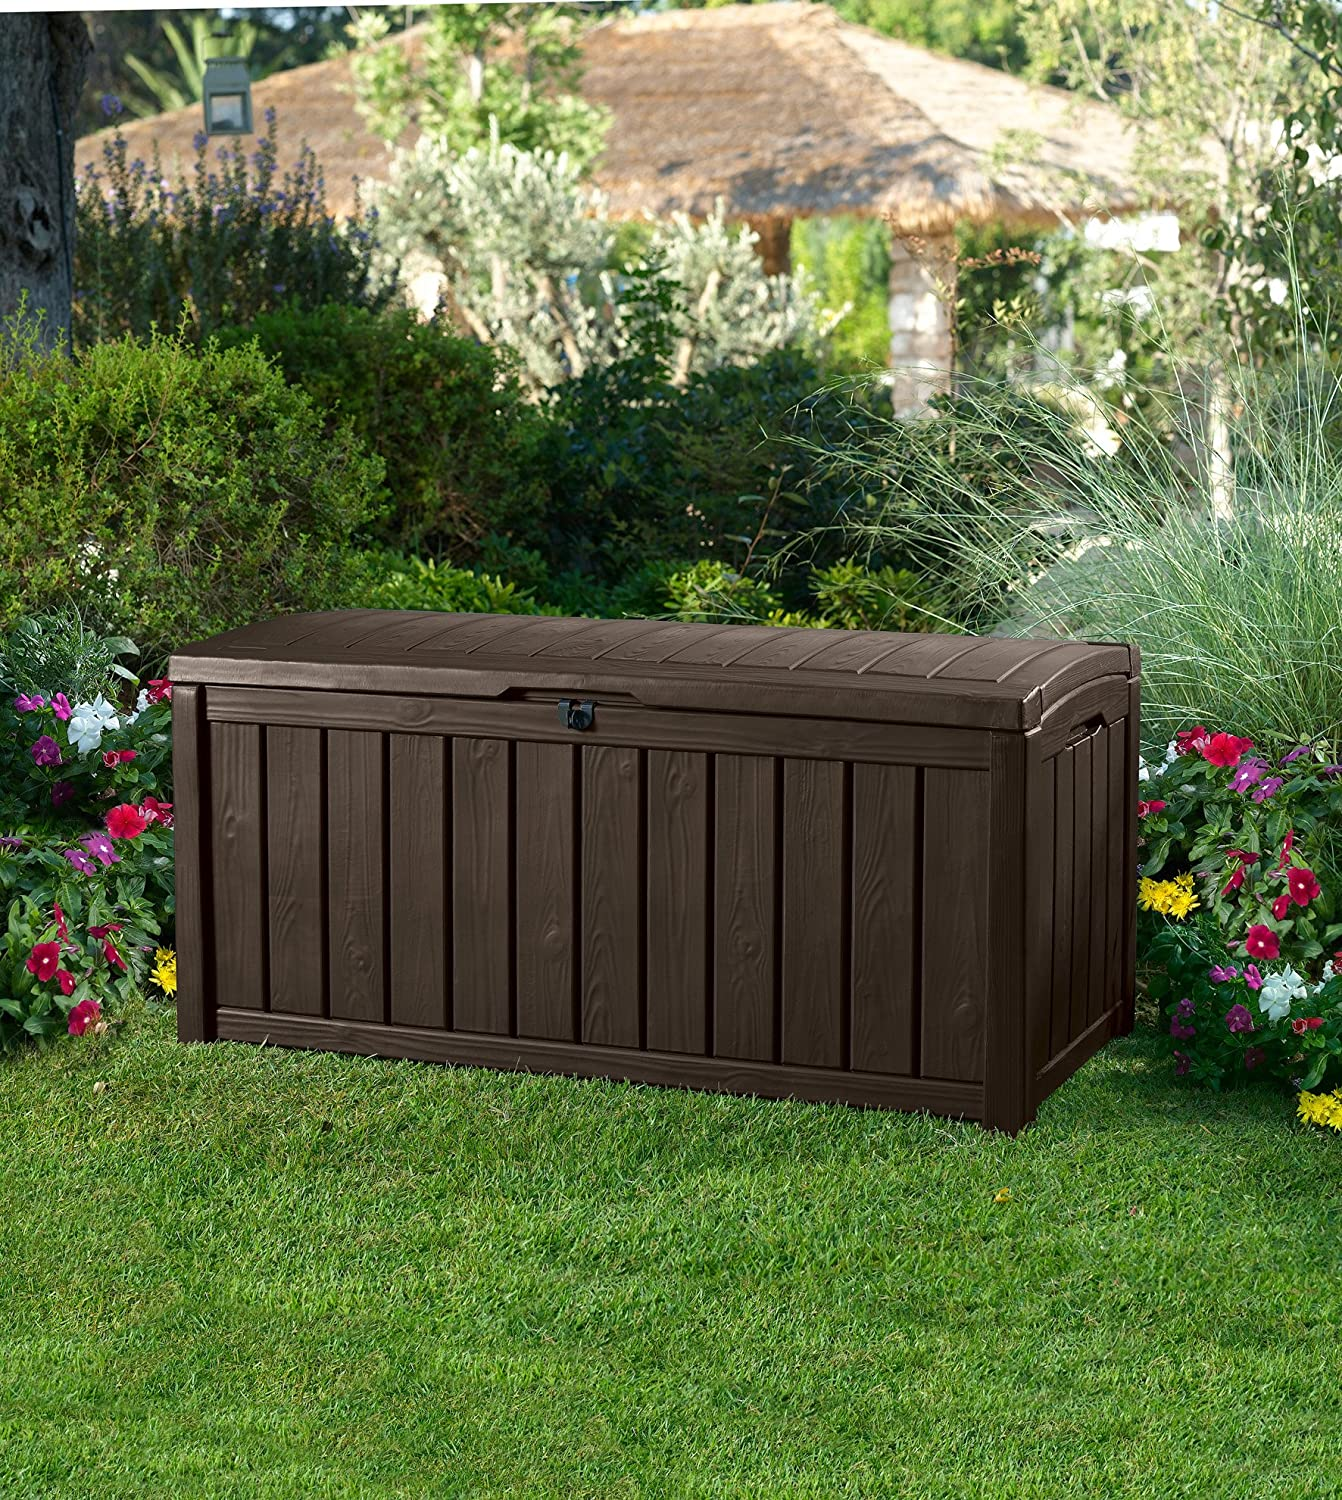 Amazon.com : Keter Glenwood Plastic Deck Storage Container Box Outdoor  Patio Furniture 101 Gal, Brown : Outdoor Storage Box : Garden U0026 Outdoor